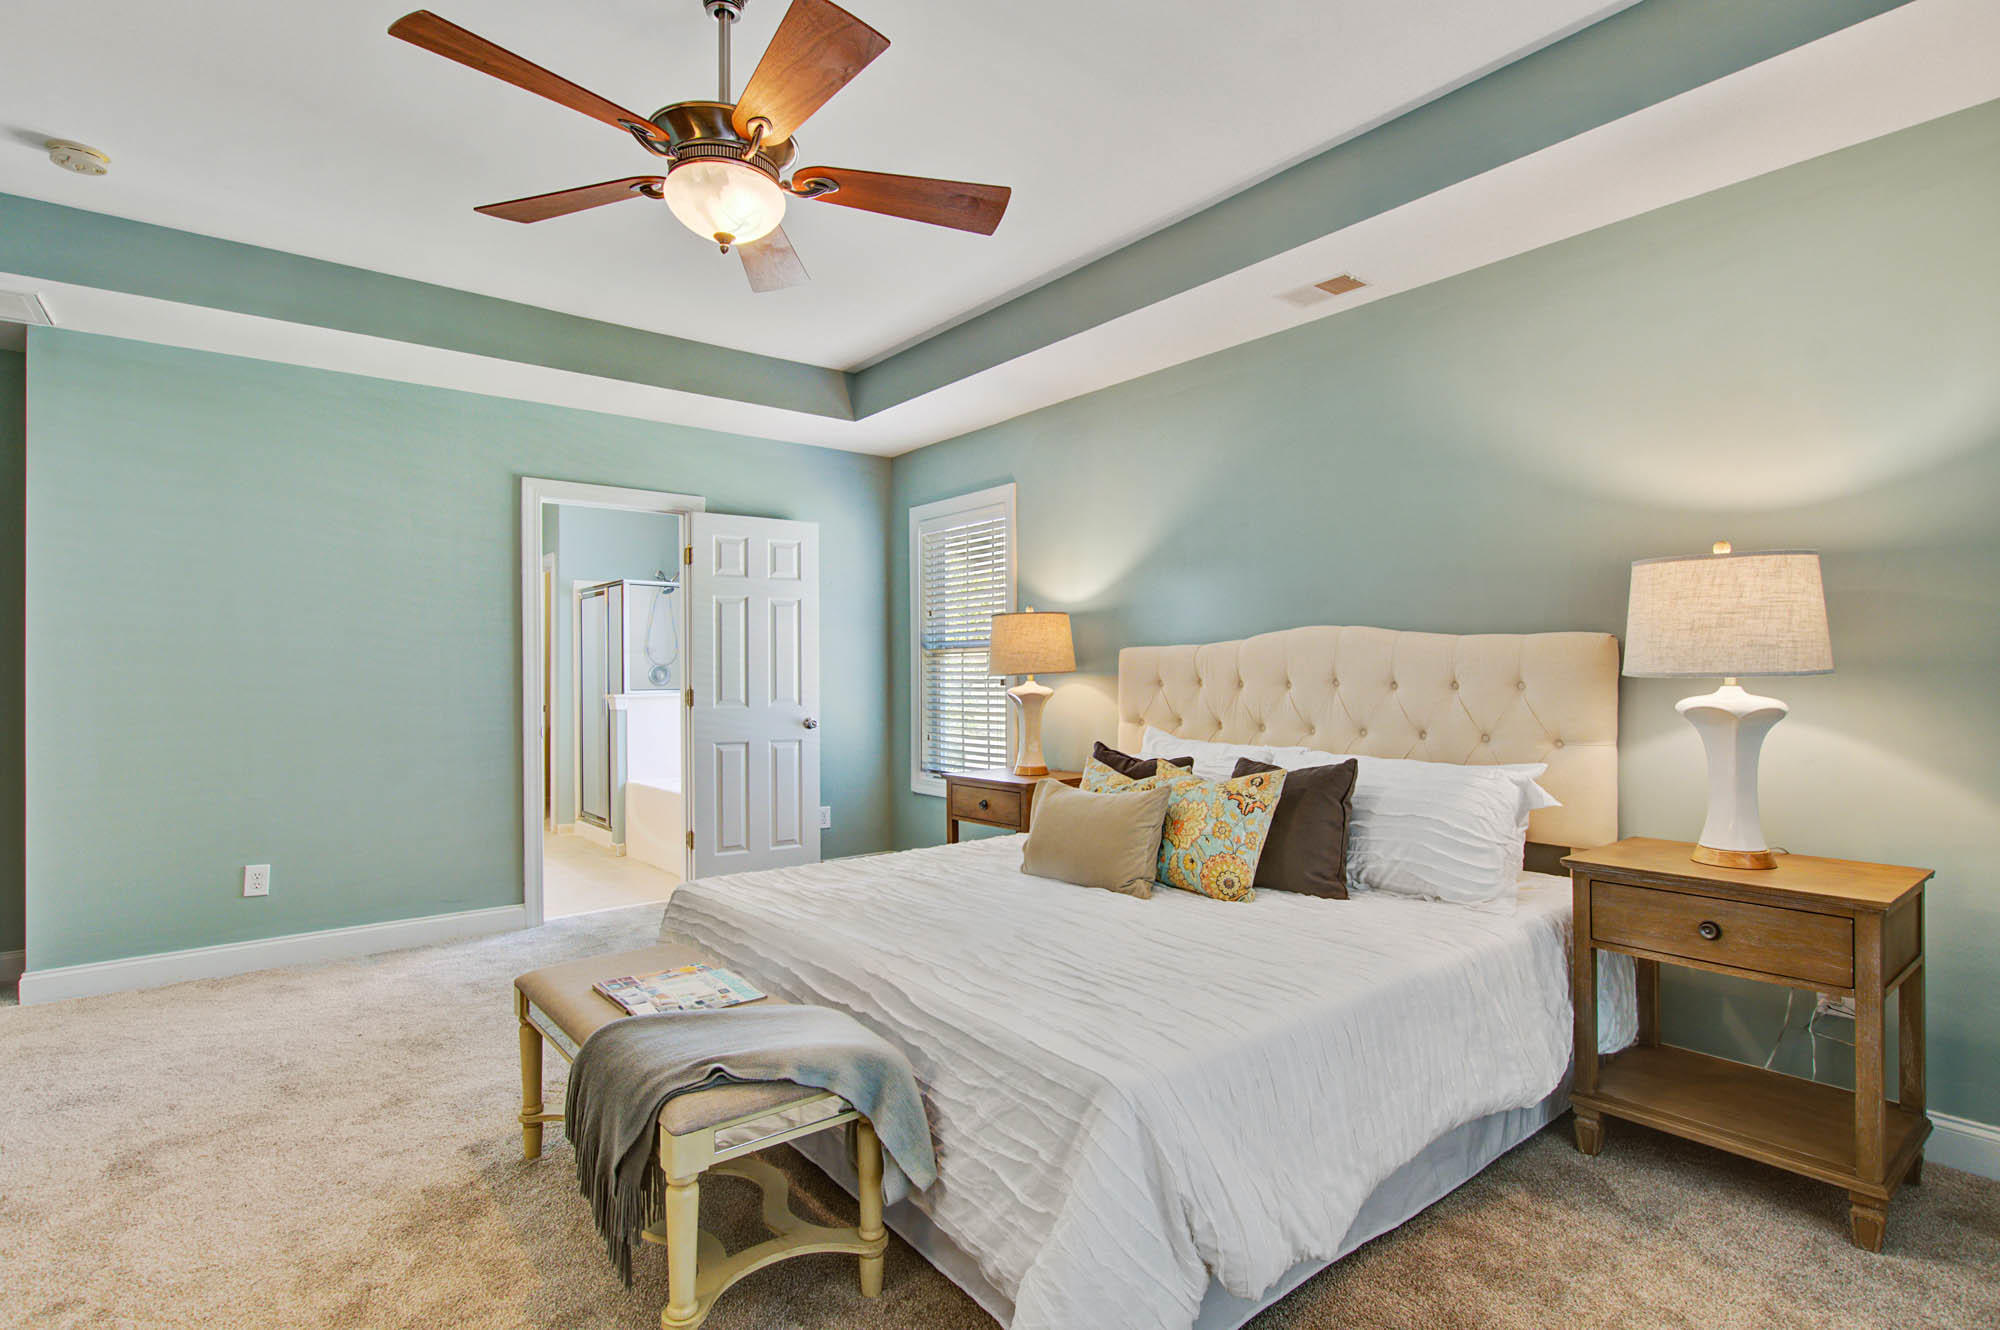 Rivertowne On The Wando Homes For Sale - 2193 Sandy Point, Mount Pleasant, SC - 15